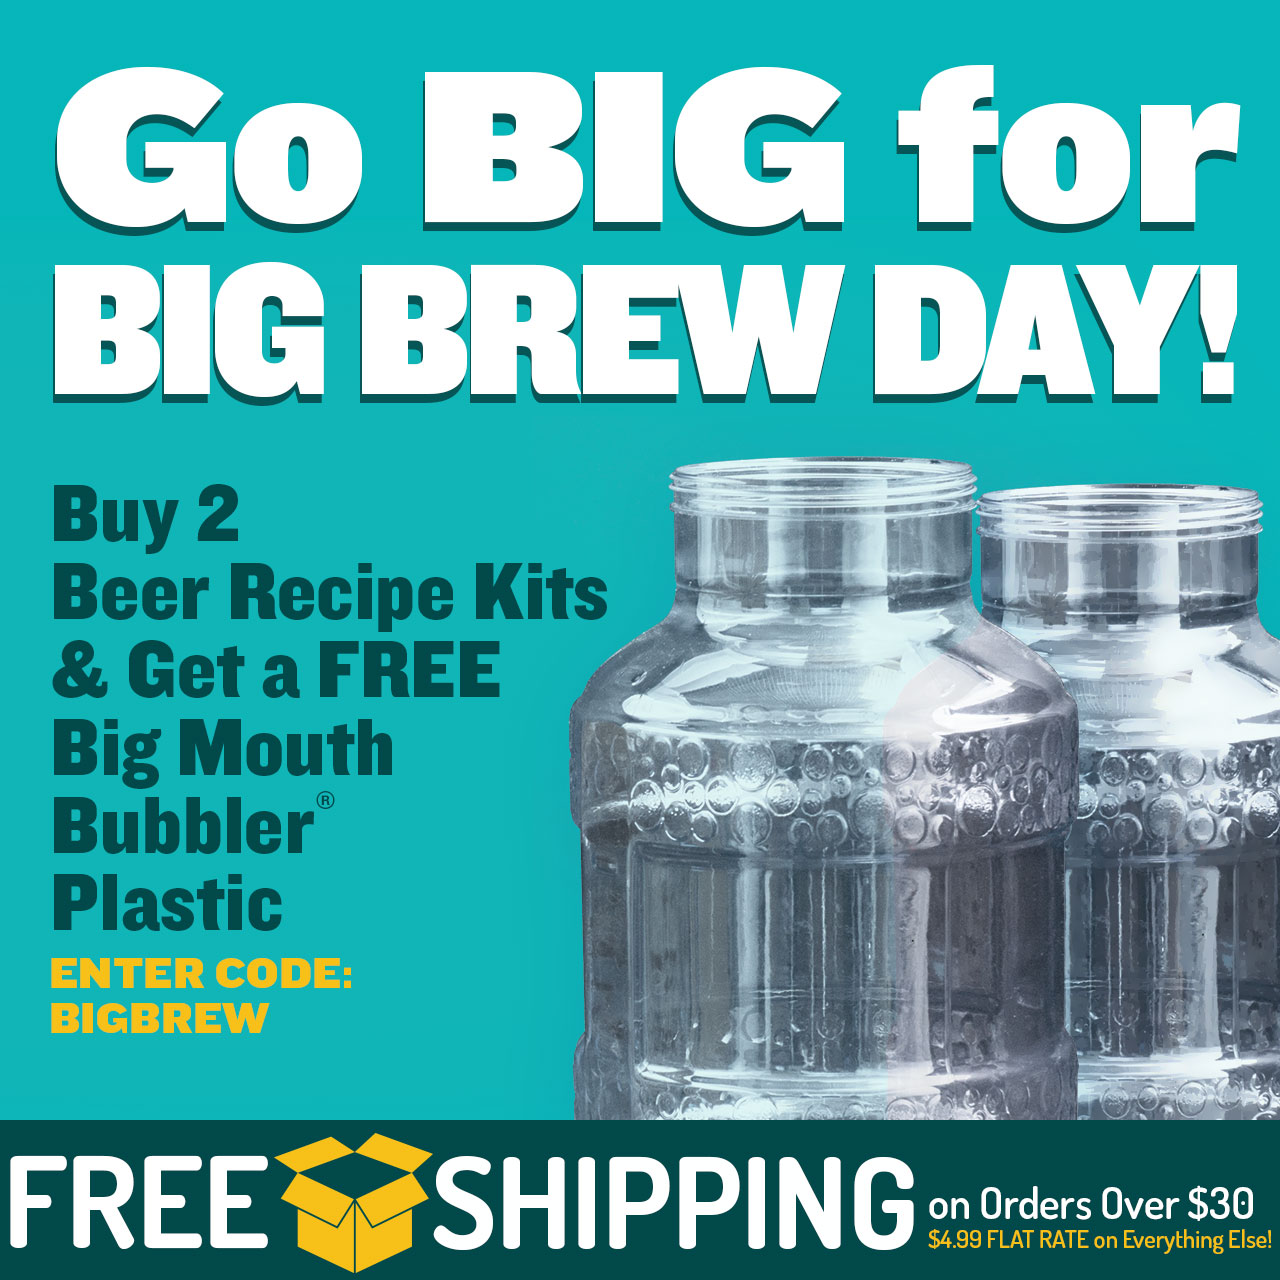 """Buy 2 Beer Kits, Get a Free Big Mouth Bubbler. Use Code """"BIGBREW"""" now through 11:59pm CST on 5/7/2018."""